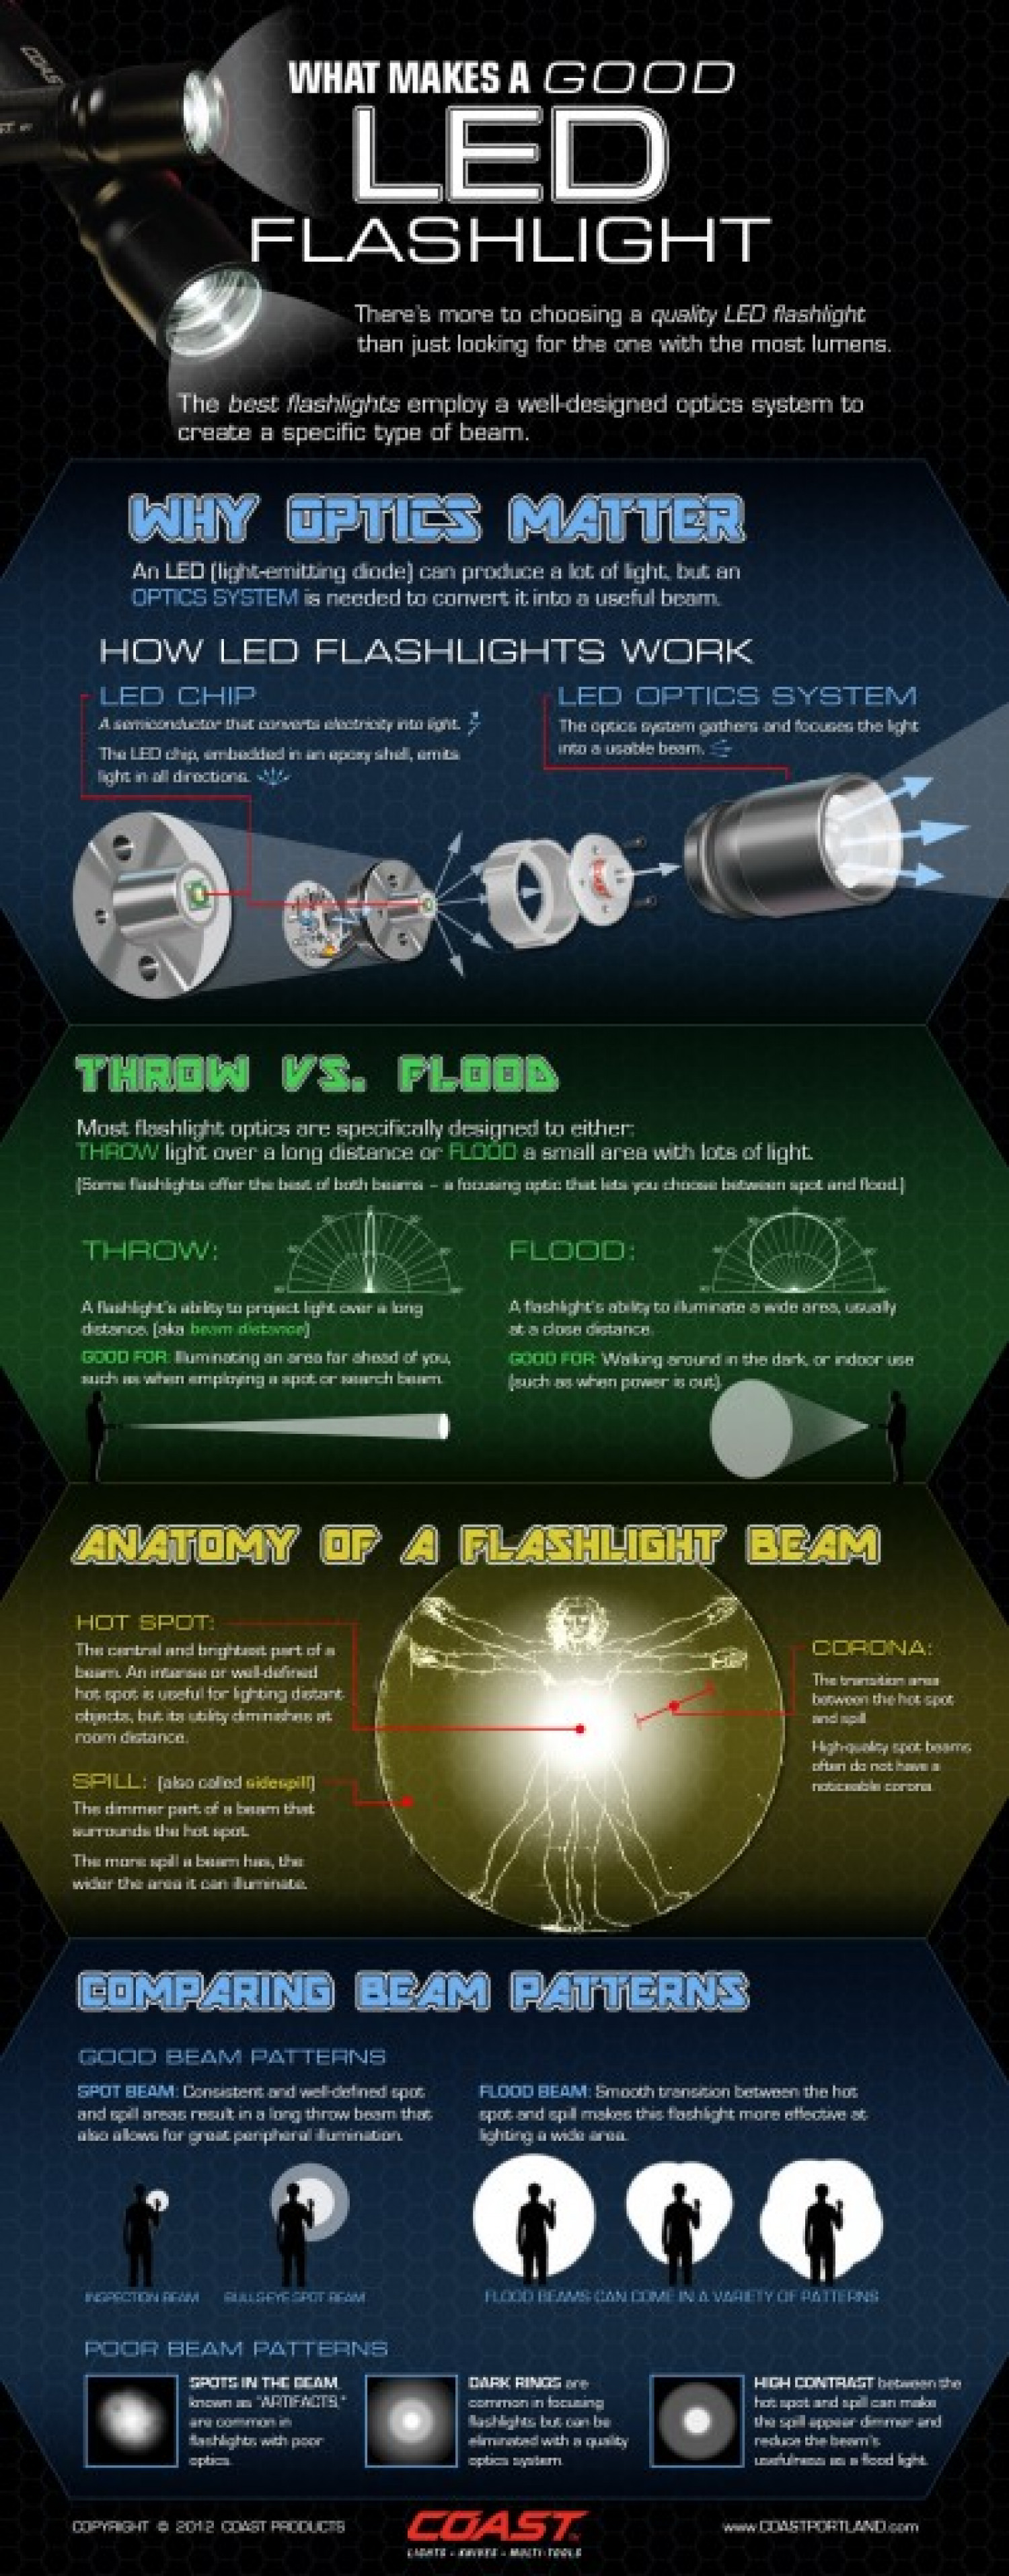 What Makes a Good LED Flashlight Infographic